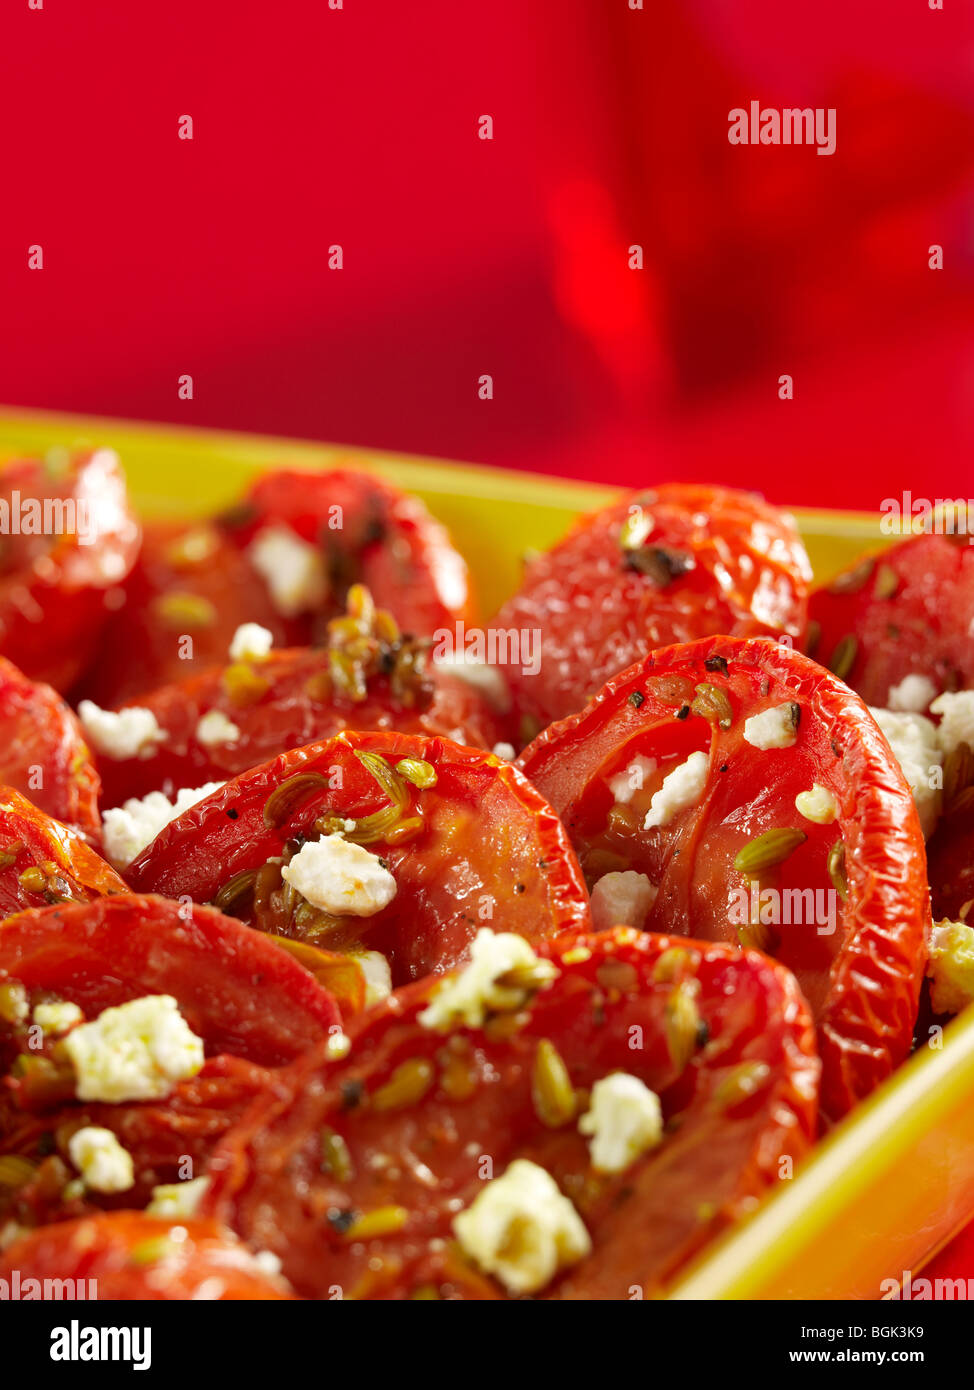 Roasted tomatoes with feta cheese in casserole dish - Stock Image